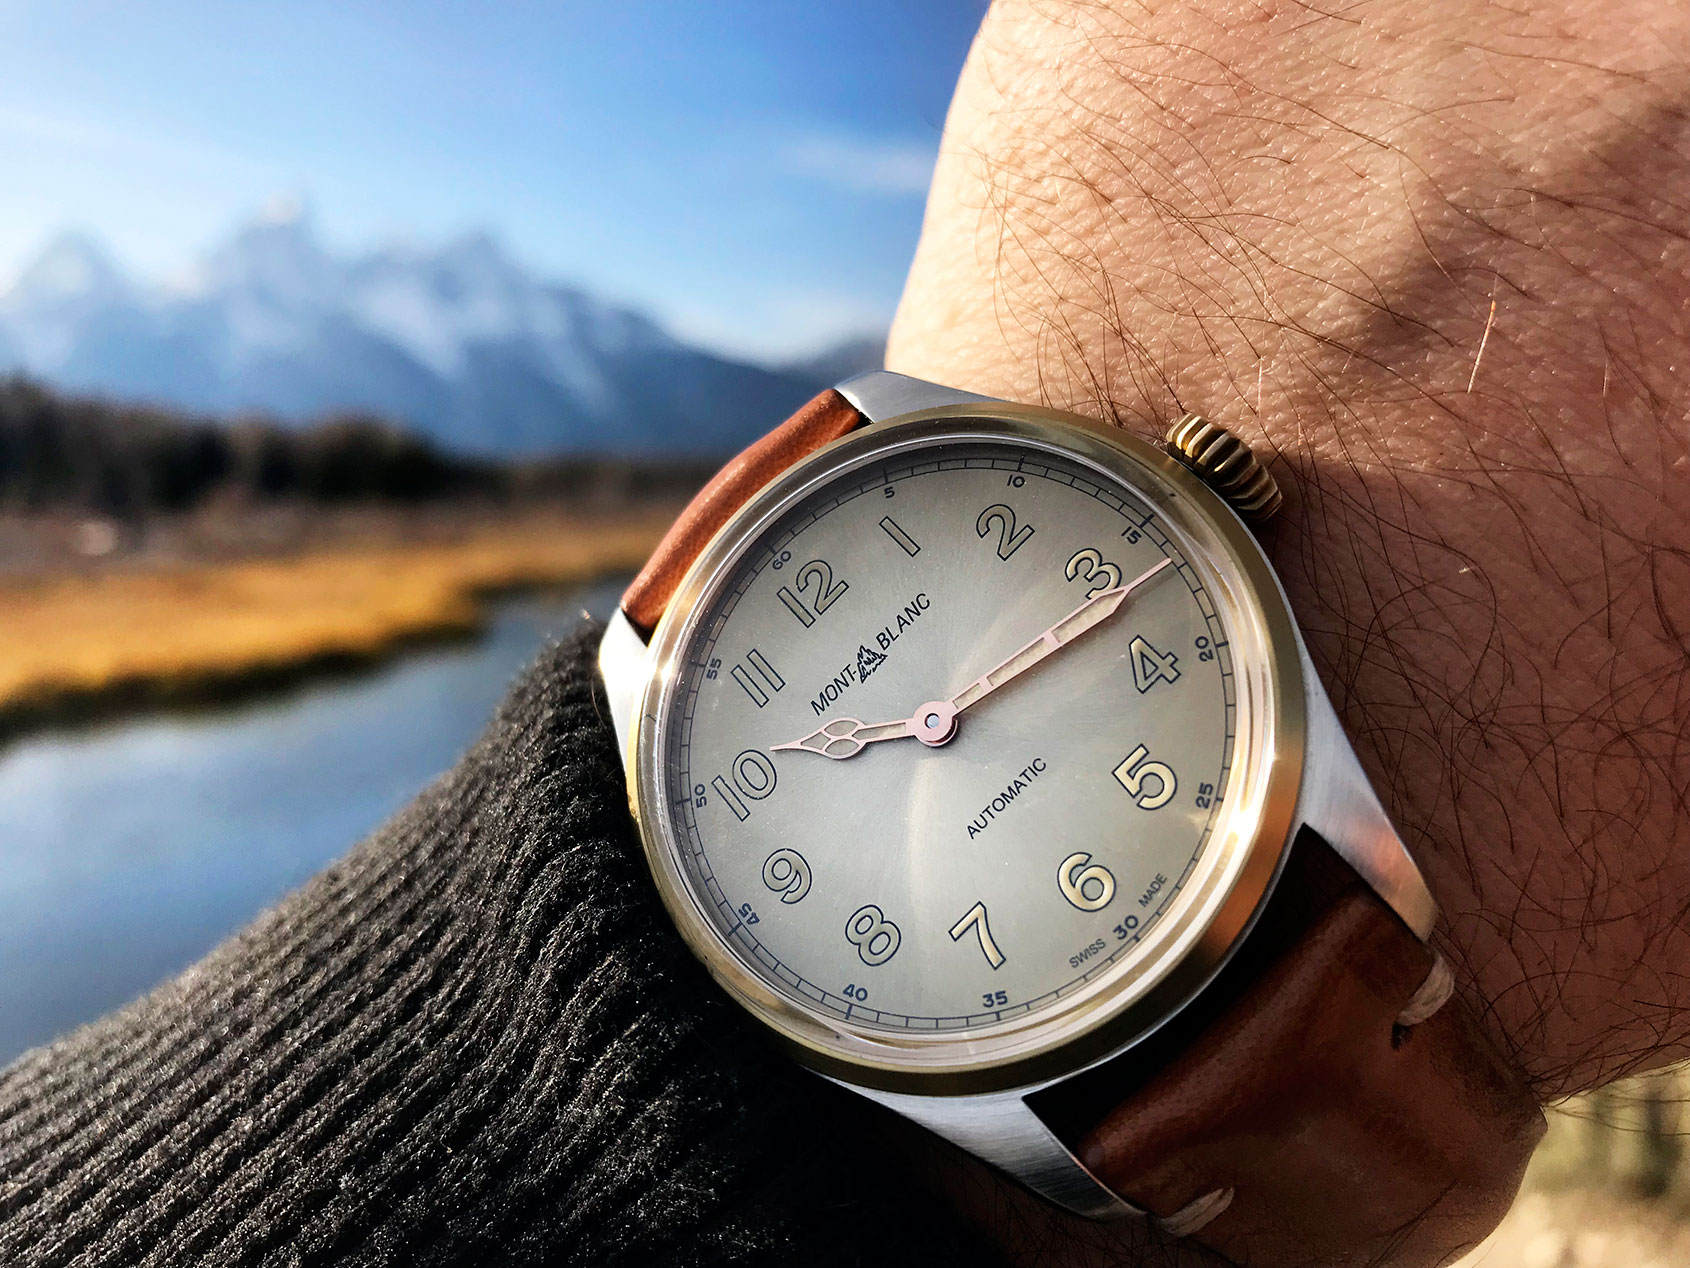 The rugged charm of the Montblanc 1858 Automatic